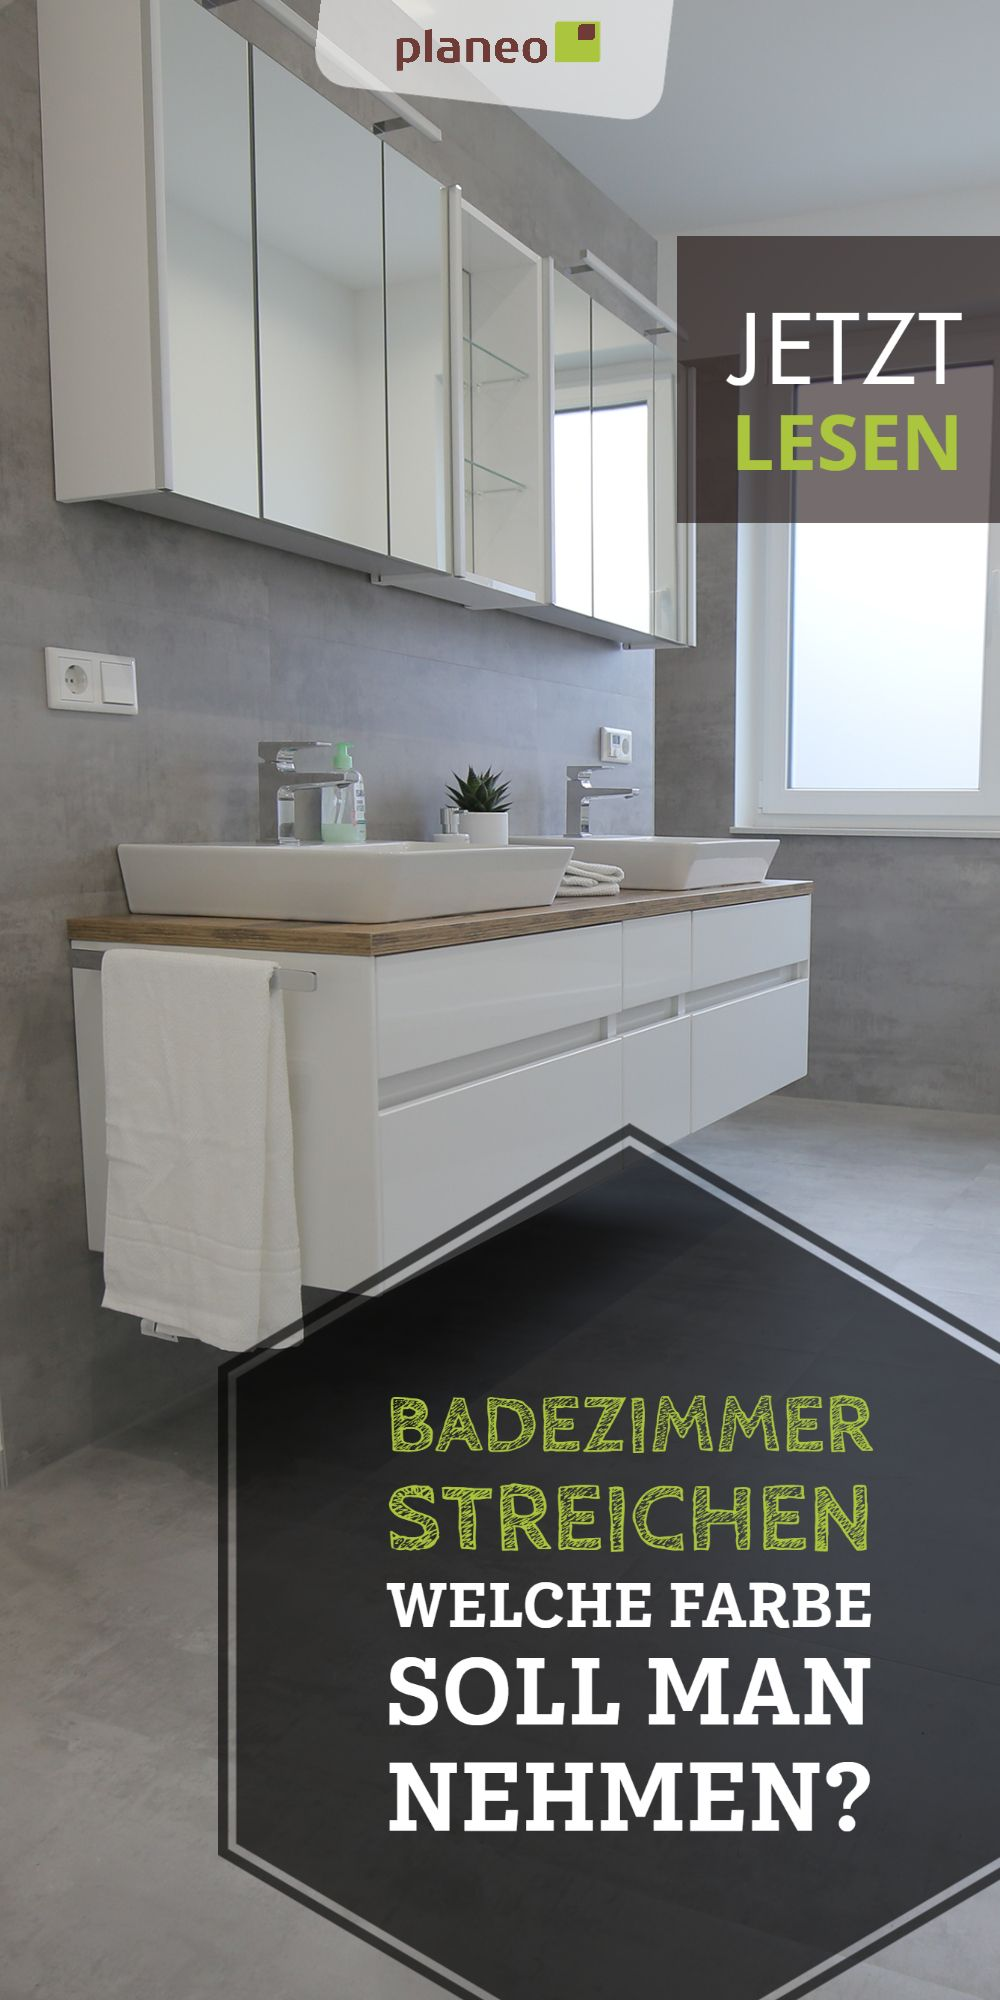 Badezimmer Streichen Welche Farbe Soll Man Nehmen Dispersionsfarbe Latexfarbe Silikatfarbe In 2020 Badezimmer Streichen Latexfarbe Dispersionsfarbe